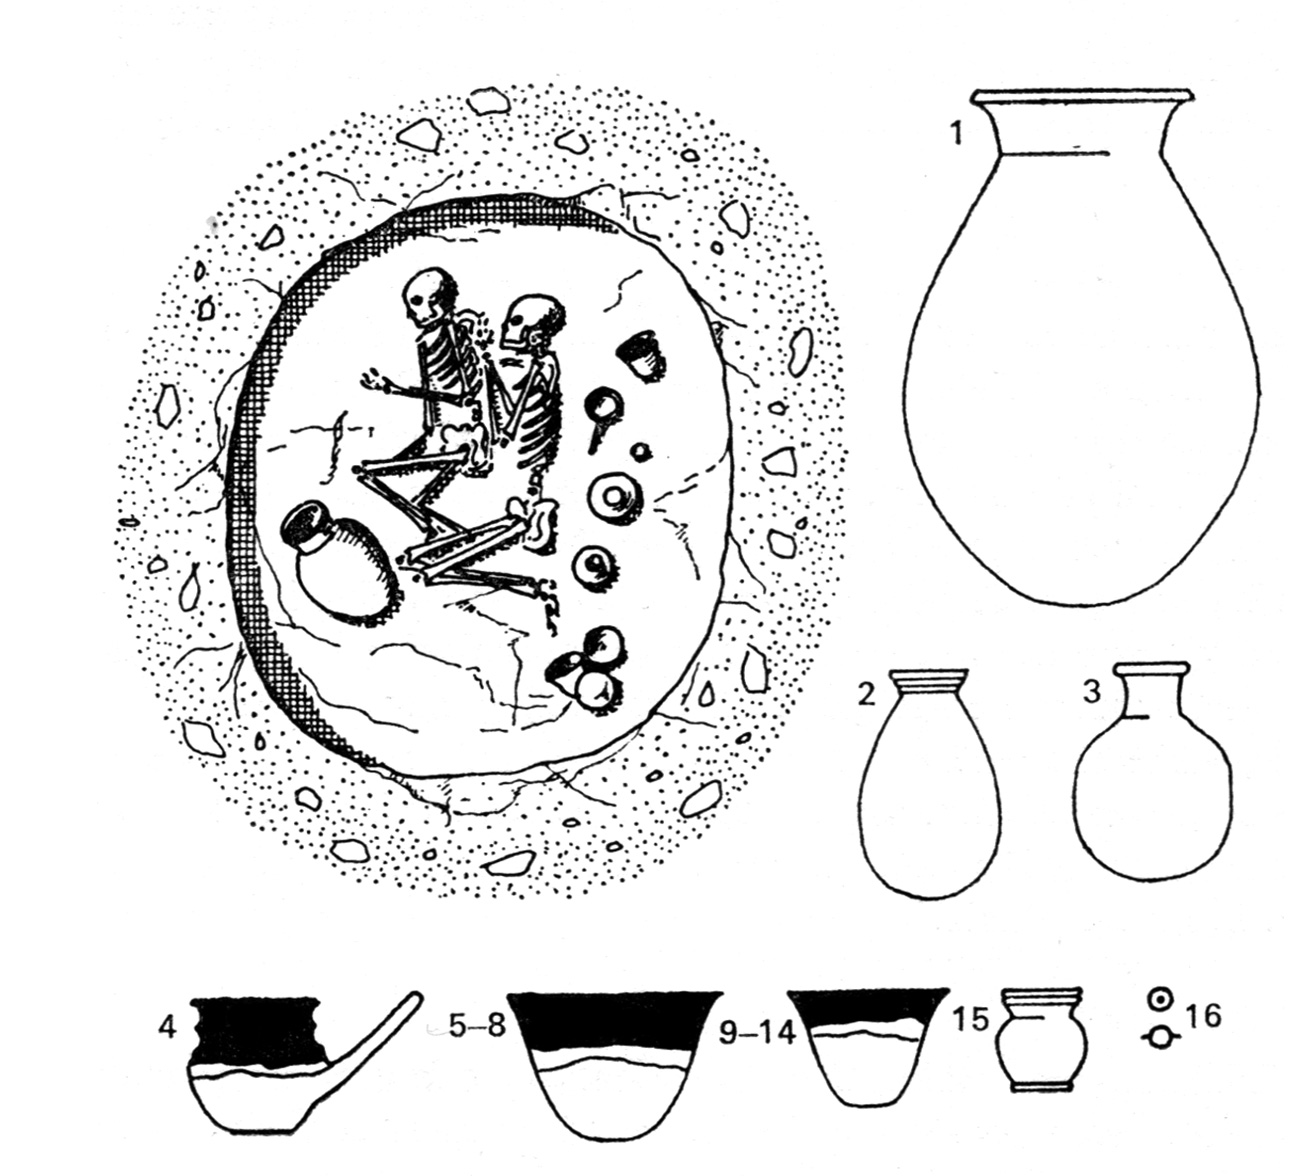 Fig. 3. Exemple de tombe Kerma et offrande de poteries. Adams 1977, fig. 29.